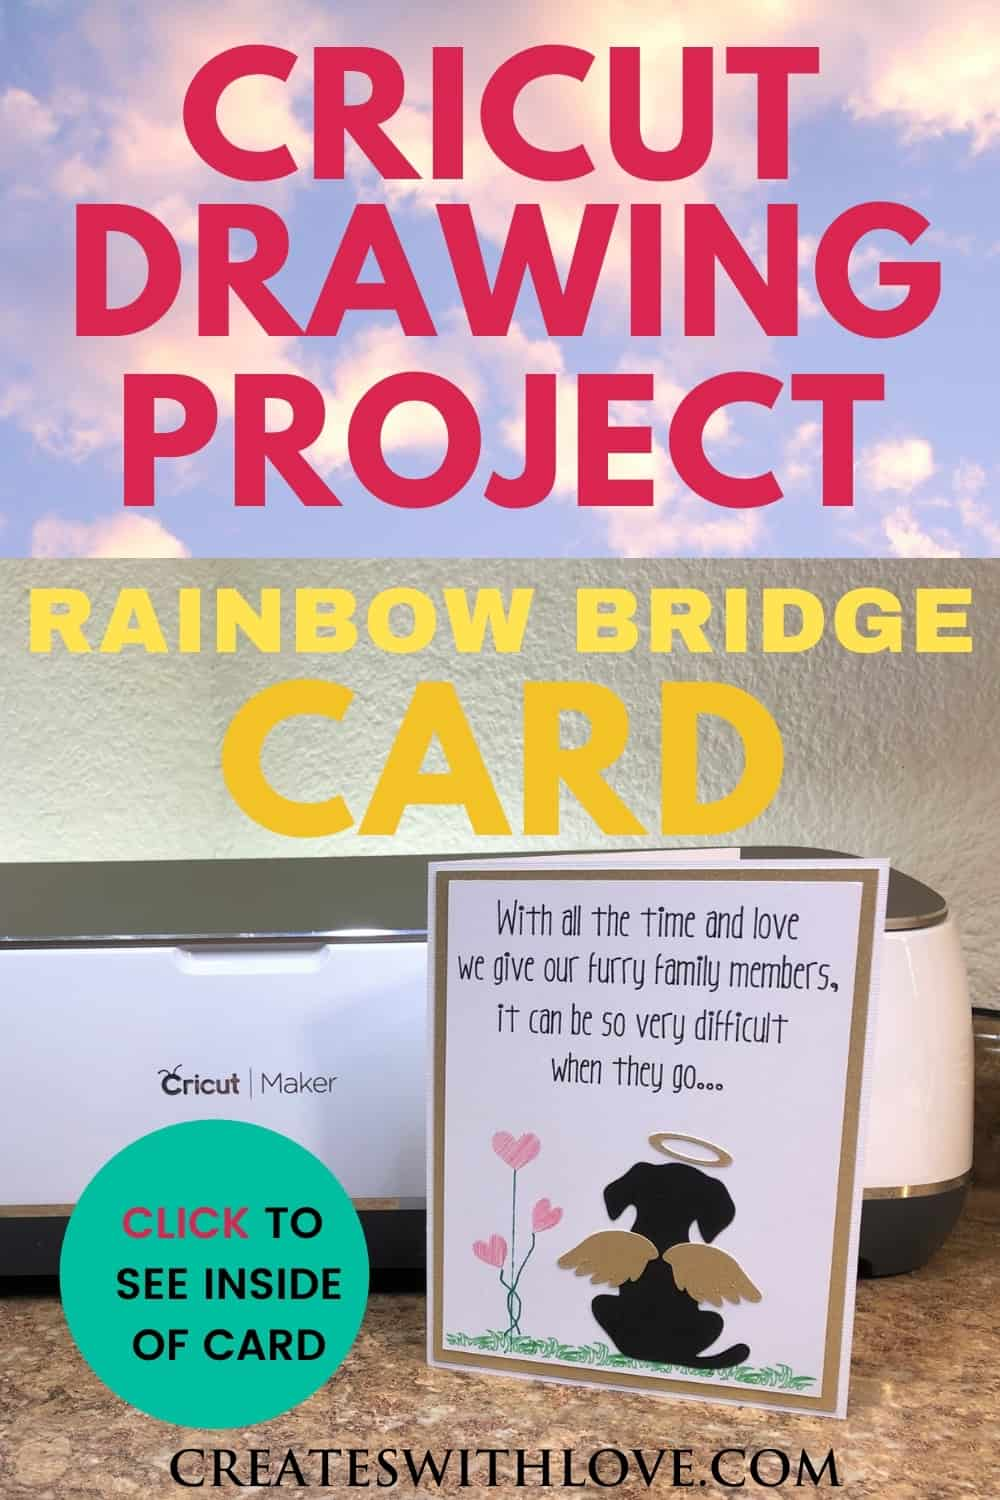 Cricut Drawing Project for a Pet Sympathy card